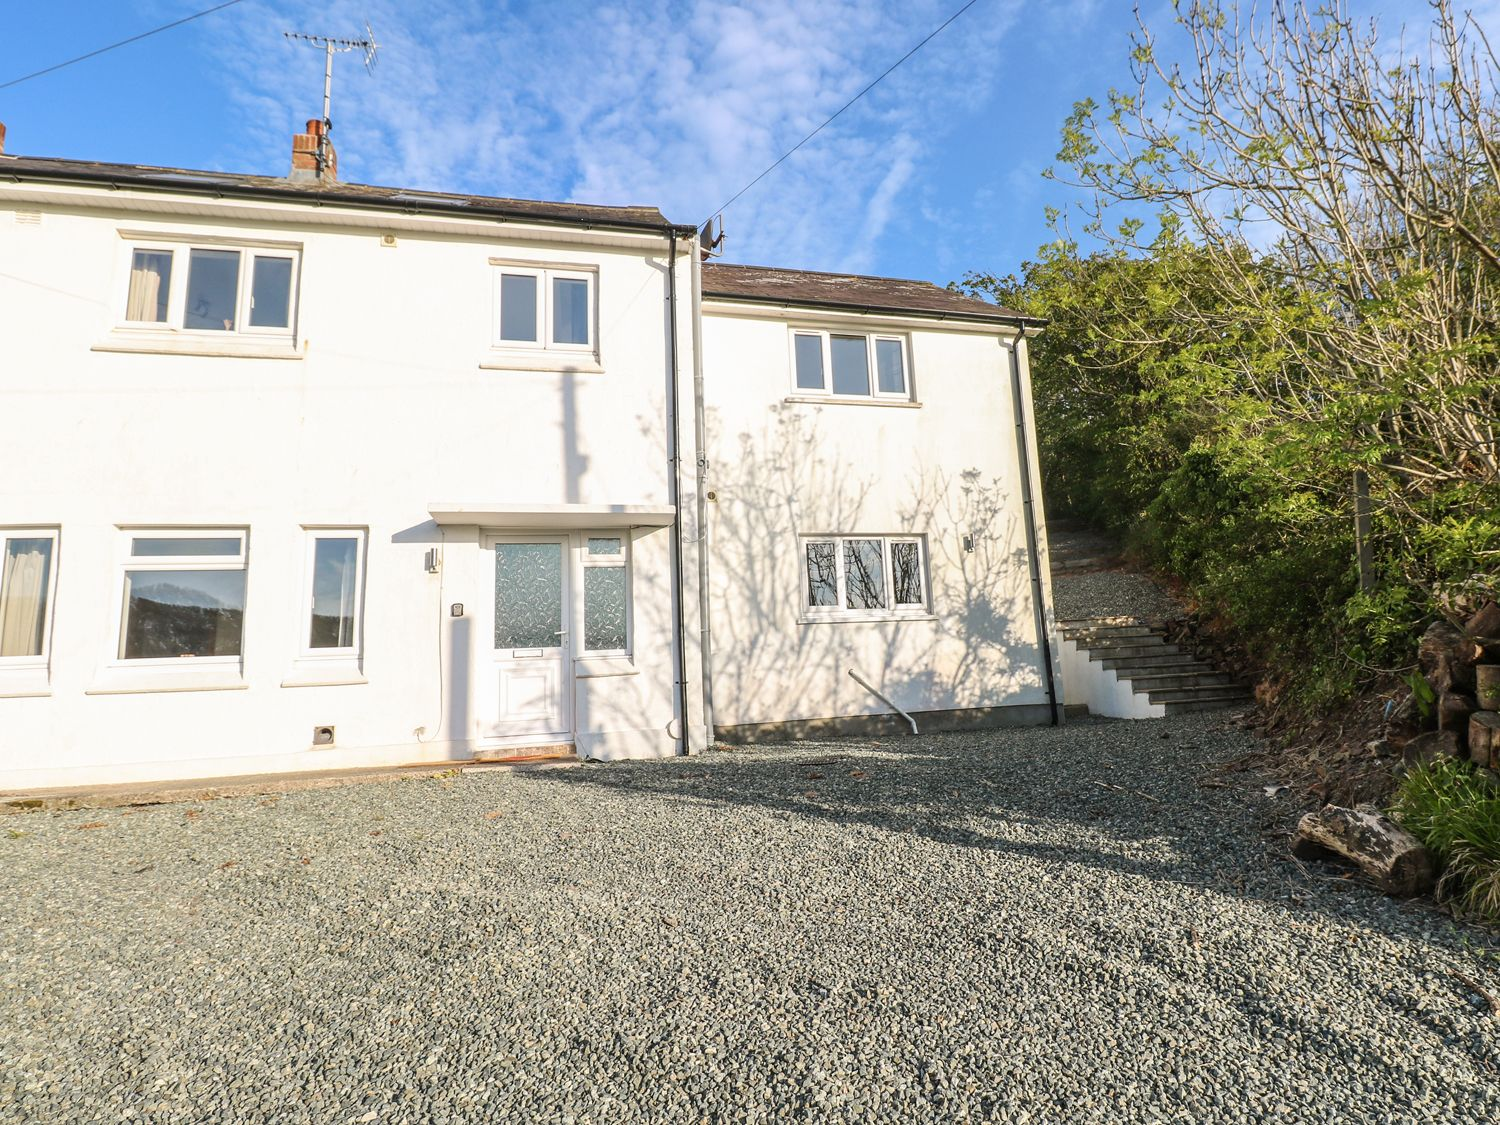 105 Blue Anchor Way - Extension - South Wales - 1007018 - photo 1